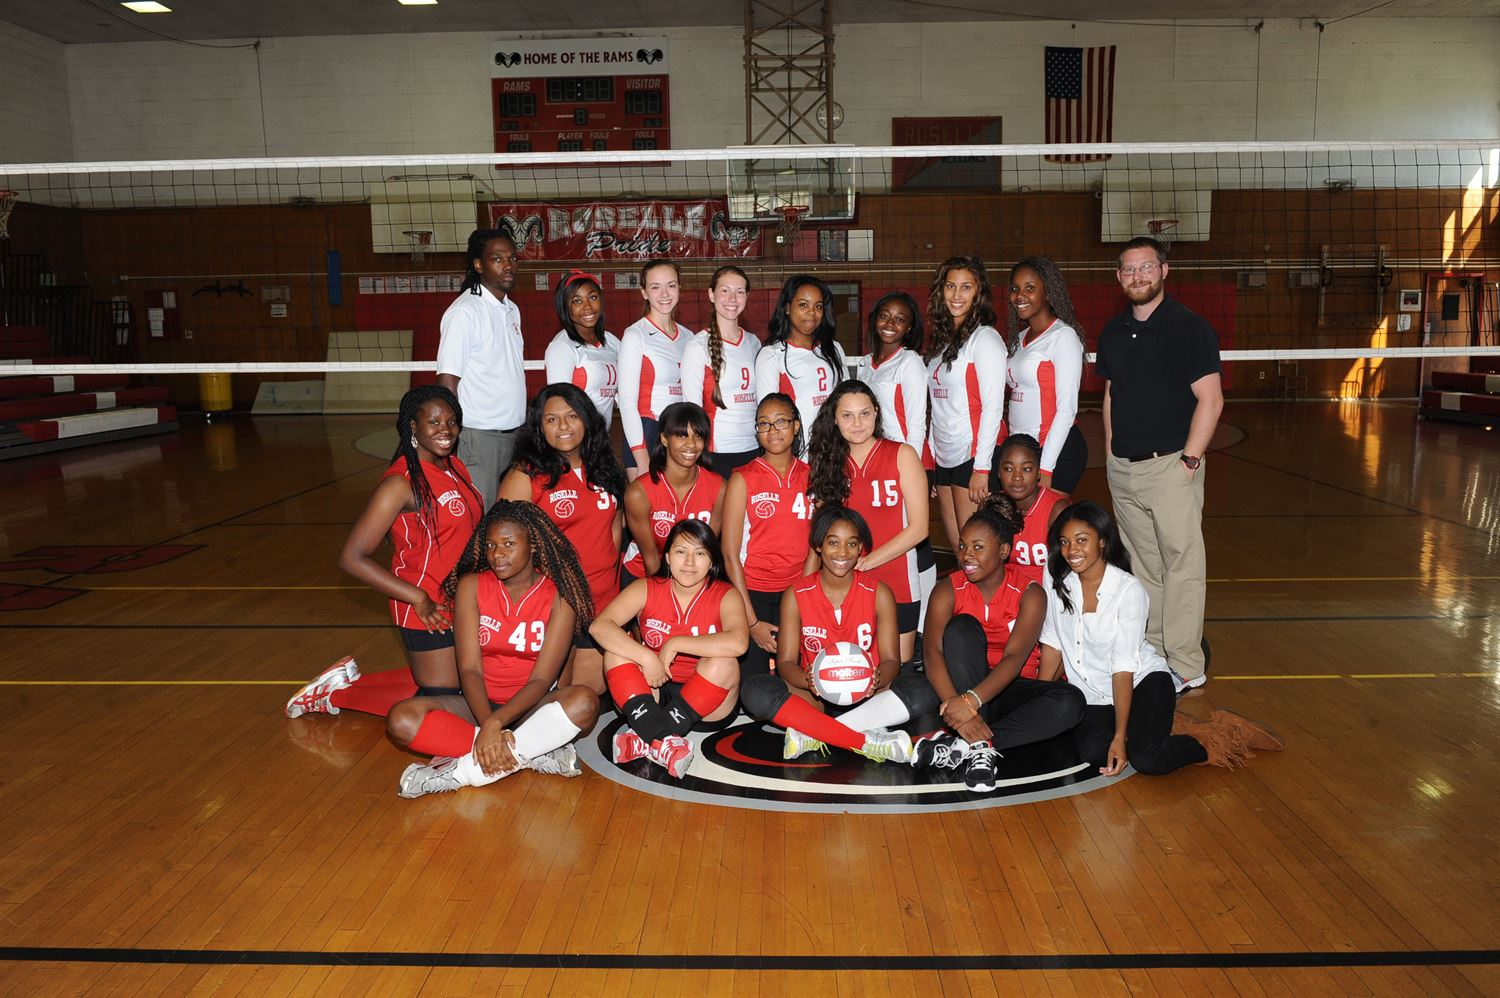 Abraham Clark High School - Girls Volleyball